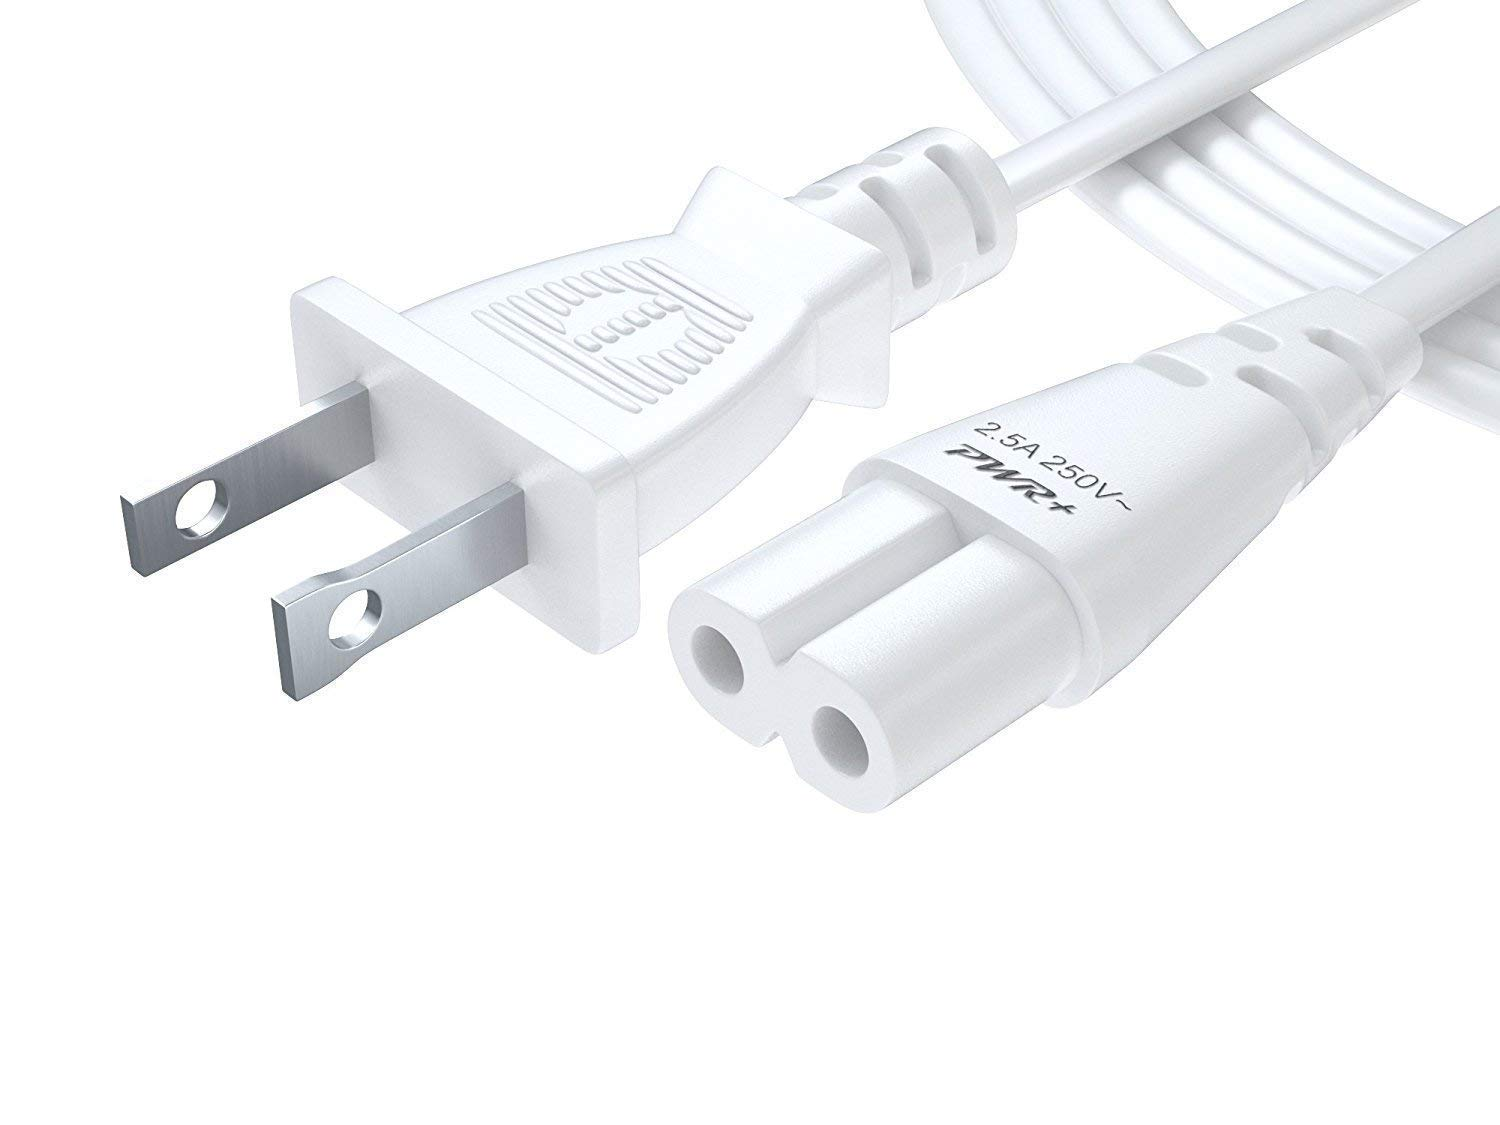 Pwr TV Power Cord 6 Ft Cable for Samsung LG TCL Sony: UL Listed 2 Prong AC Wall Plug 2-Slot LED LCD Insignia Sharp Toshiba JVC Hisense Electronics UN65KS8000FXZA UN40J5200AFXZA 43UH6100 White